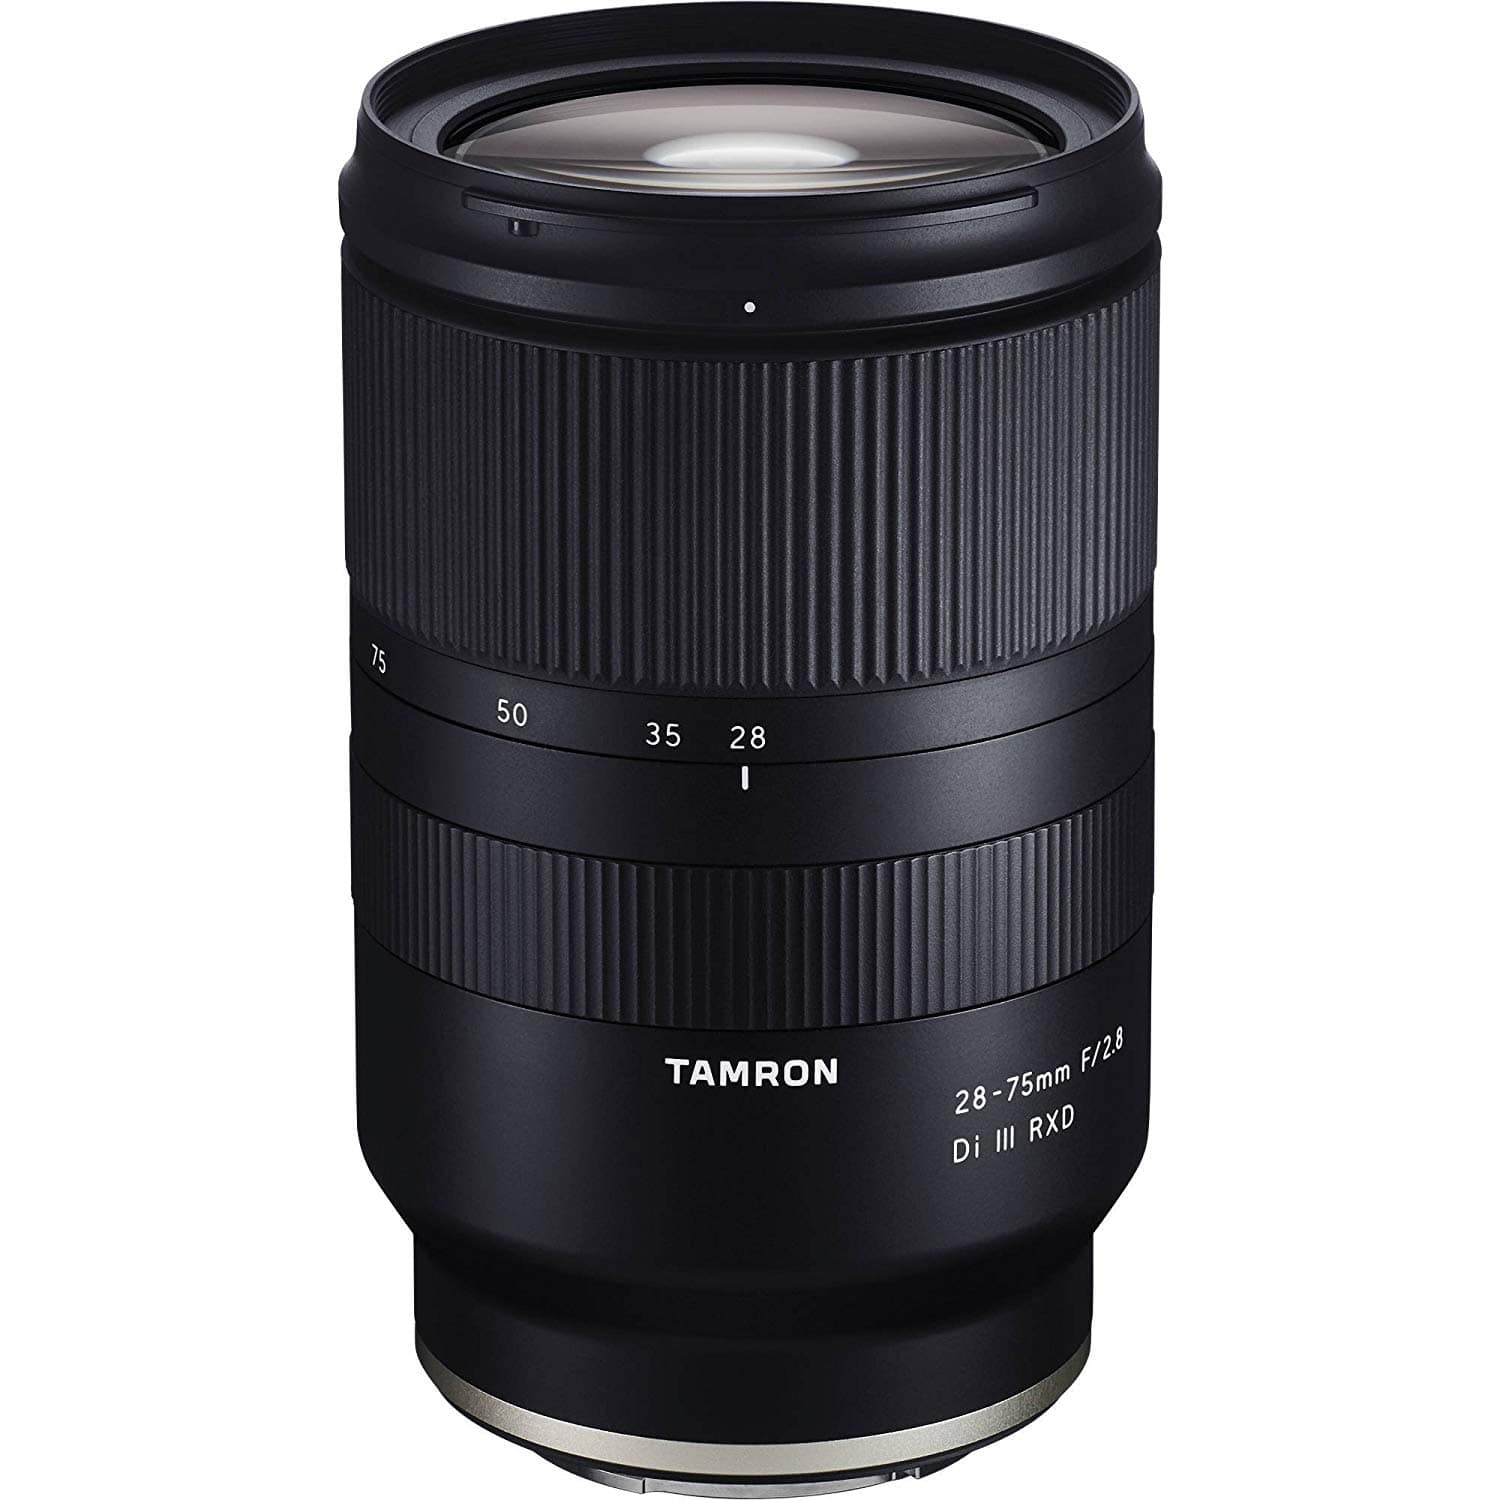 Tamron 28-75mm F/2.8 for Sony Mirrorless Full Frame E Mount (Tamron 6 Year Limited USA Warranty) $799